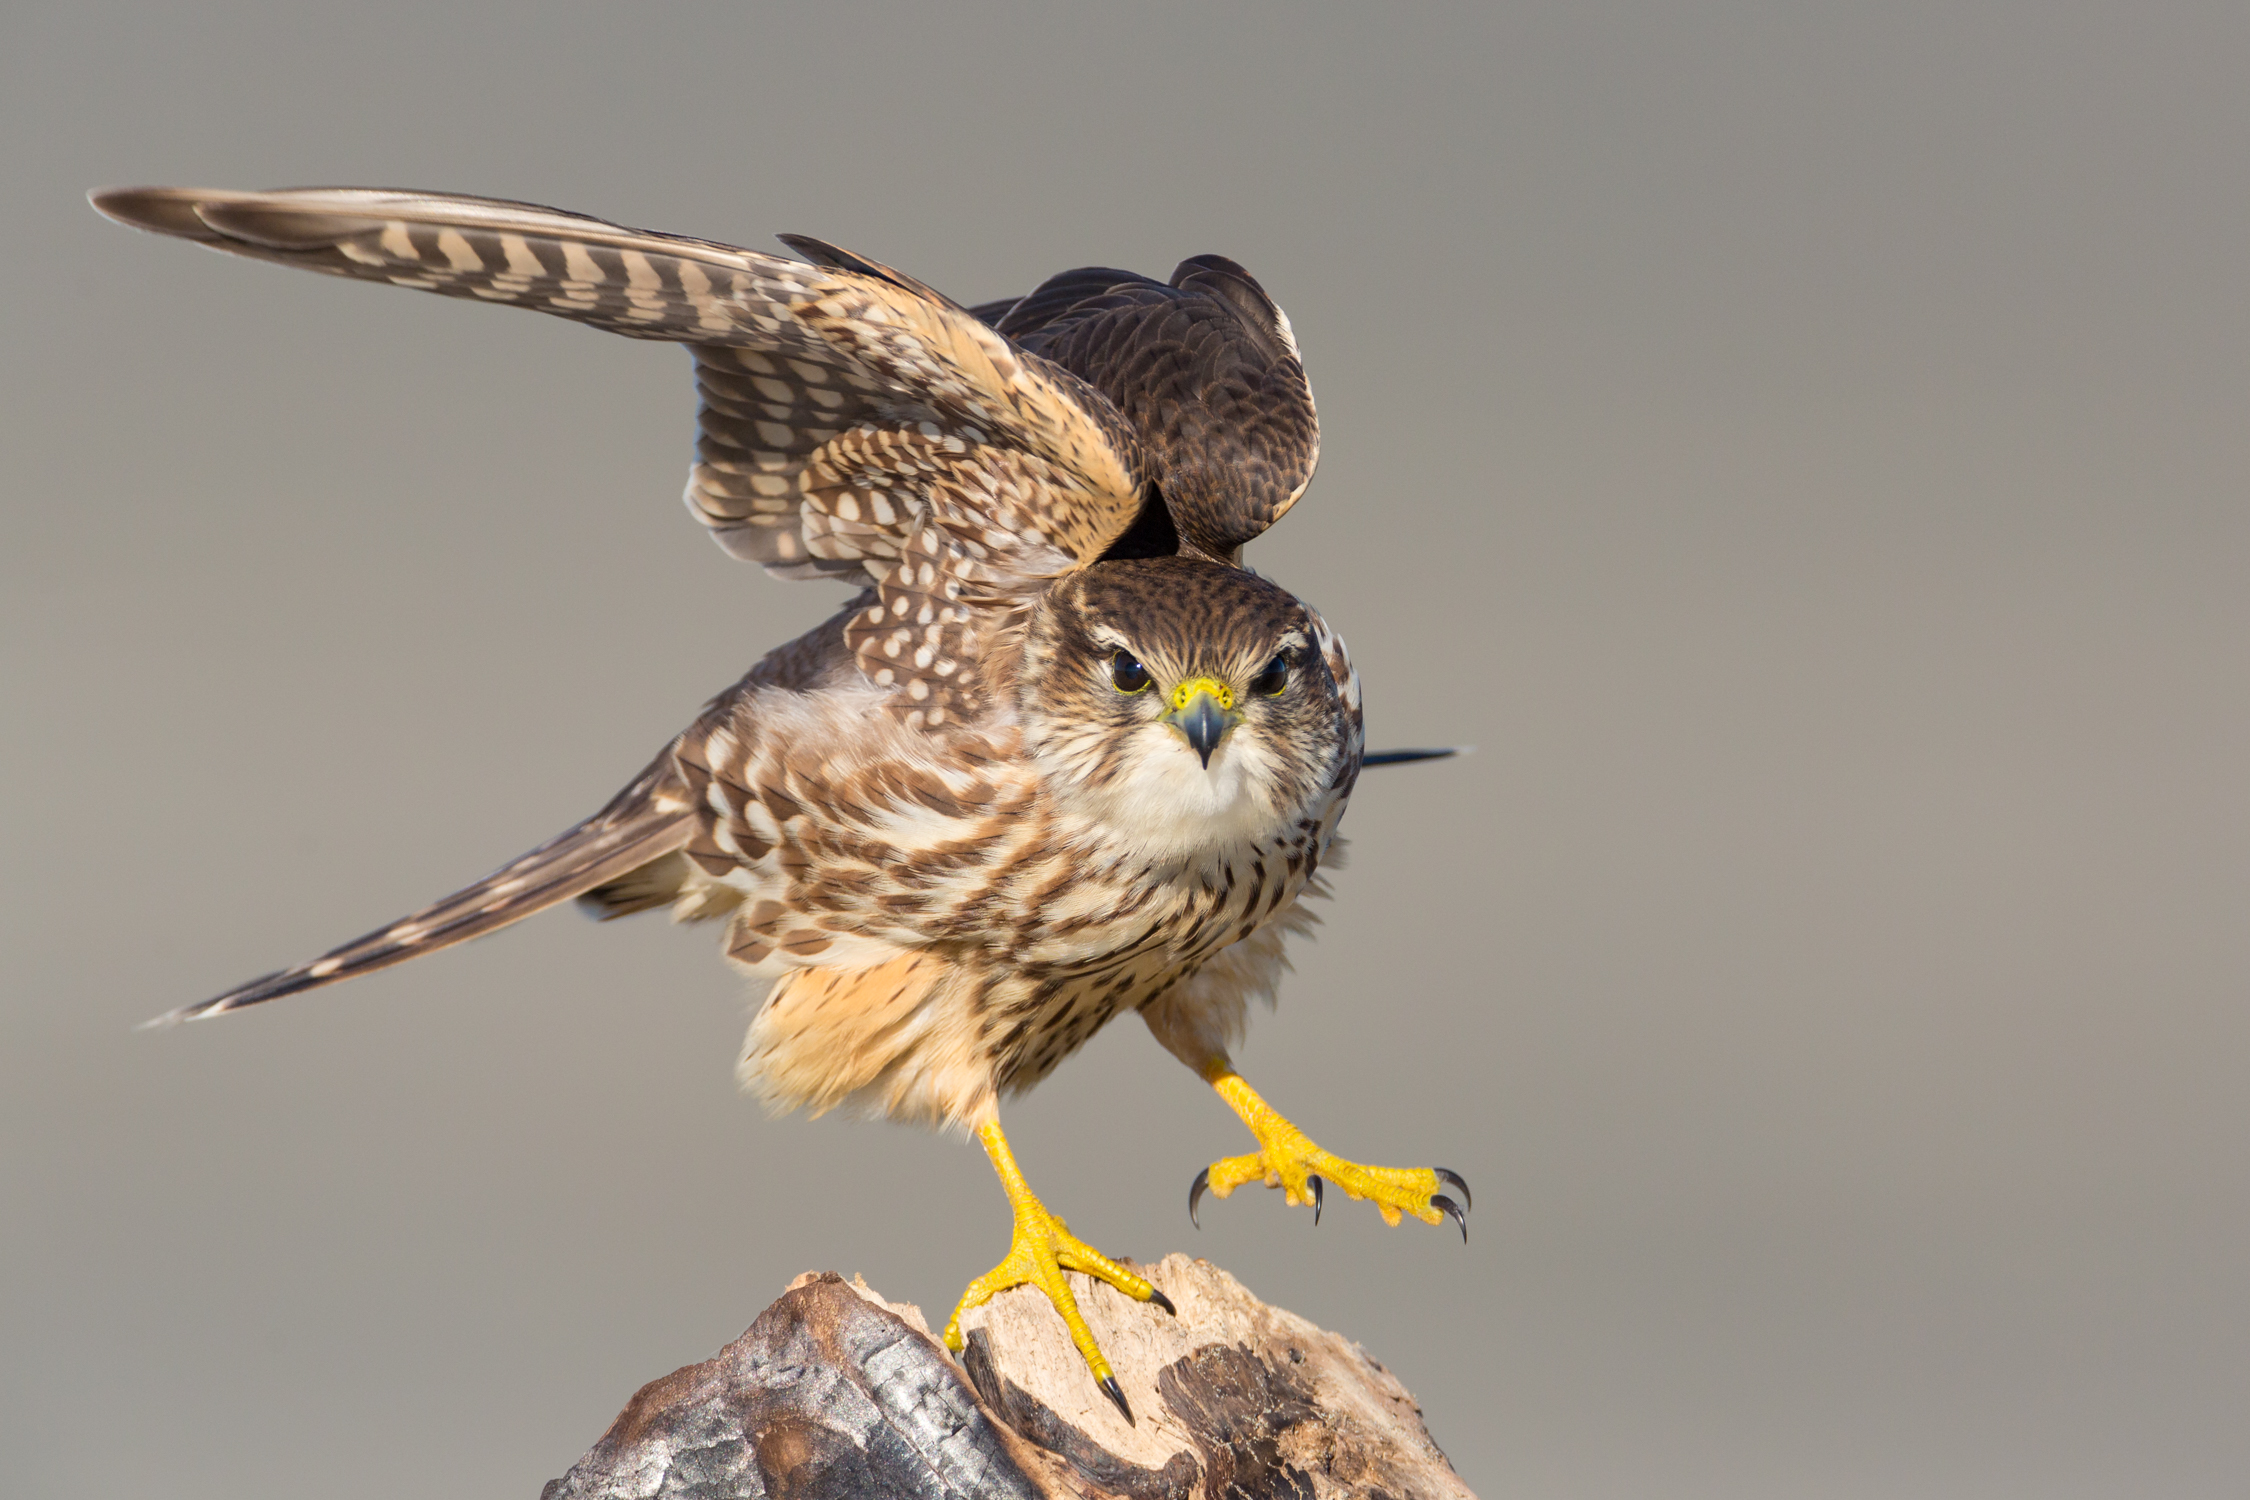 Merlin doing a wing stretch or a happy dance?